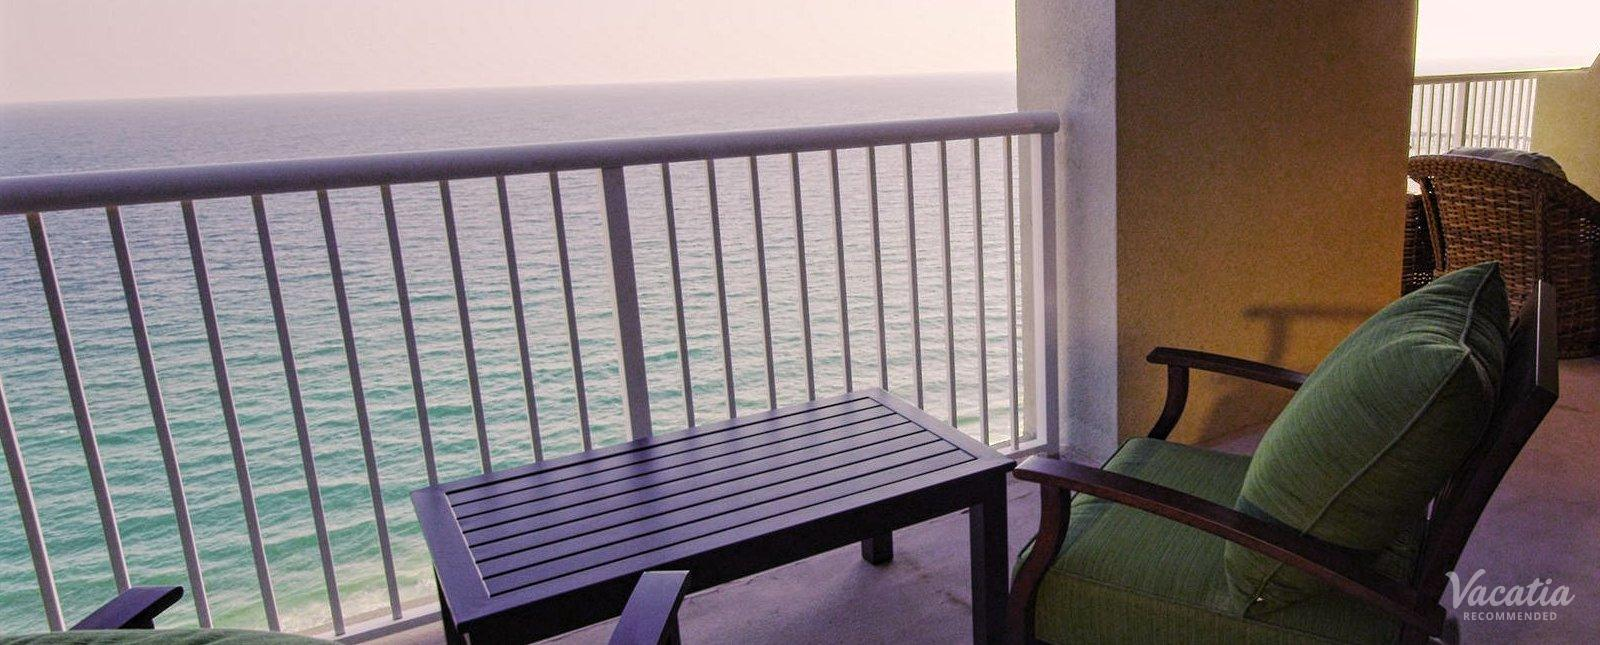 Grand Panama Beach Resort Balcony View